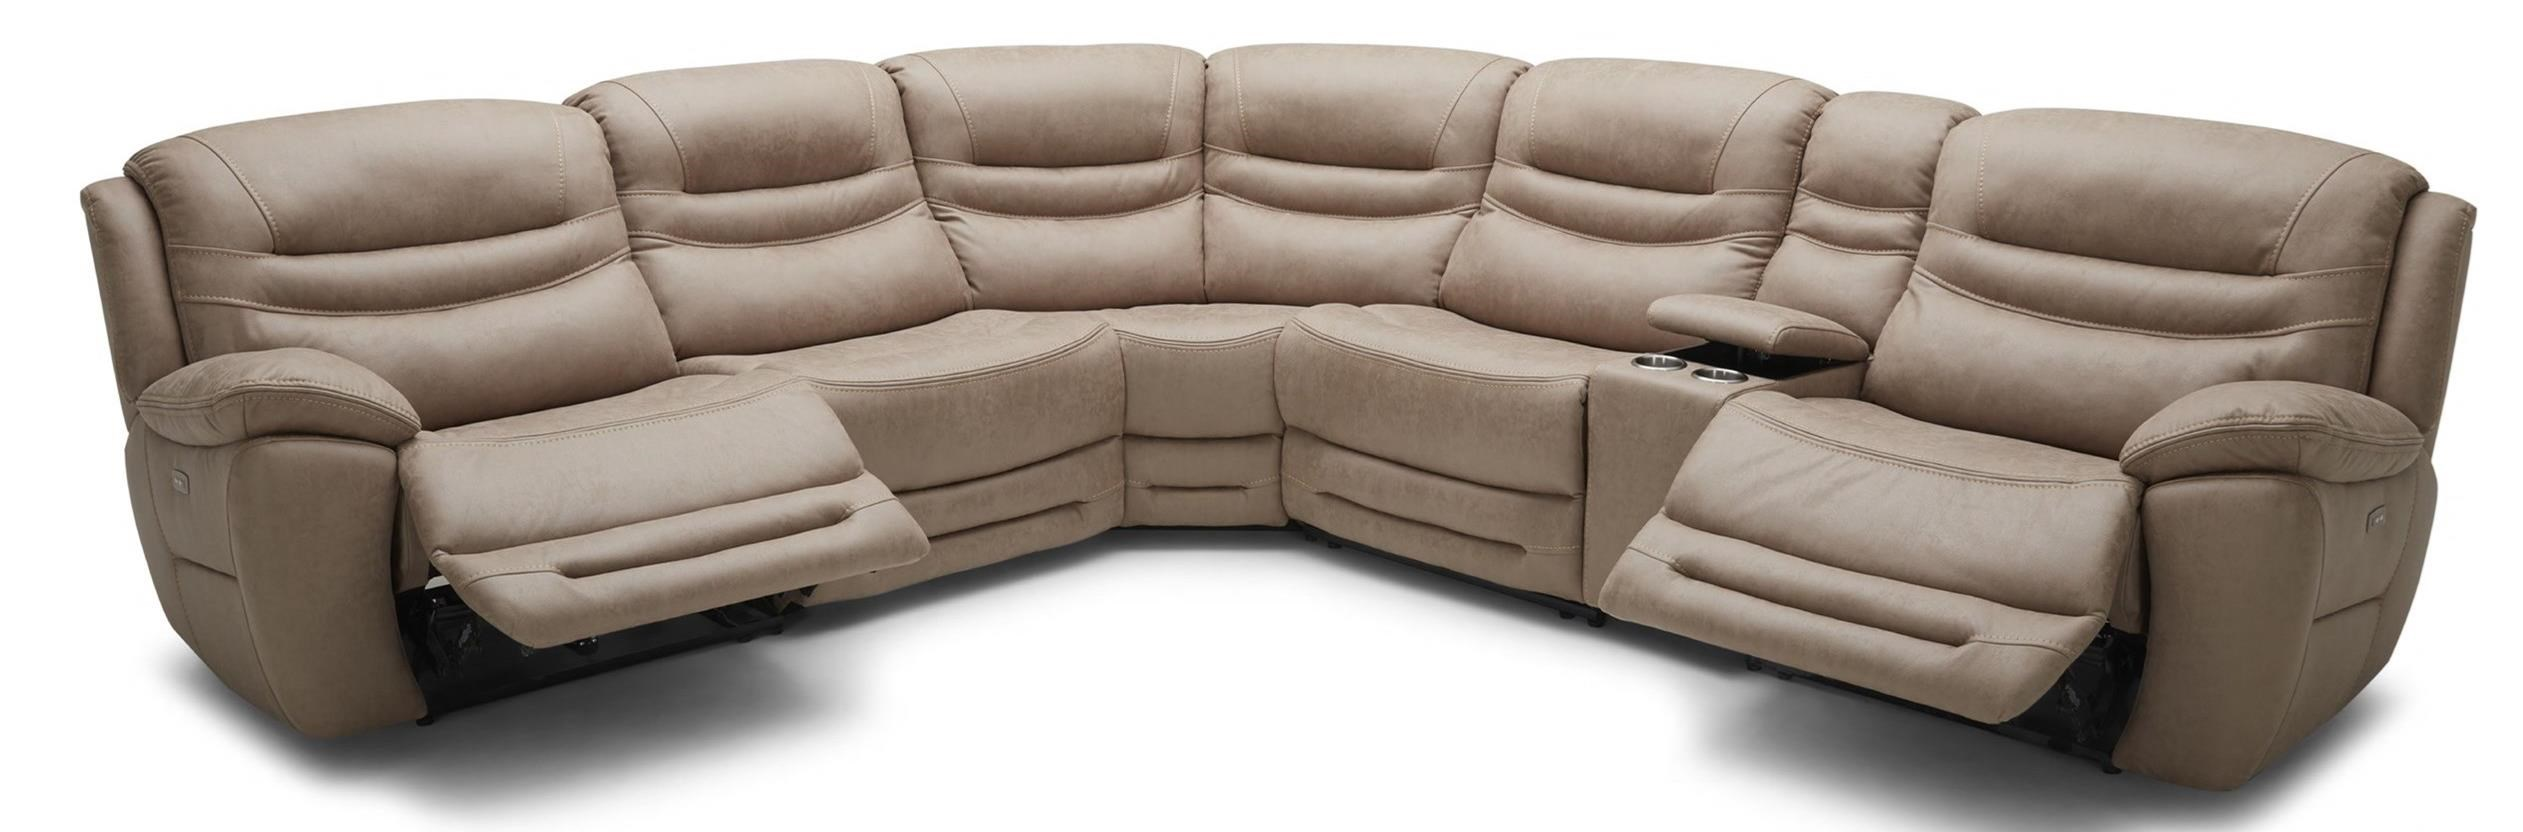 6 pc Pwr Reclining Sectional Sofa